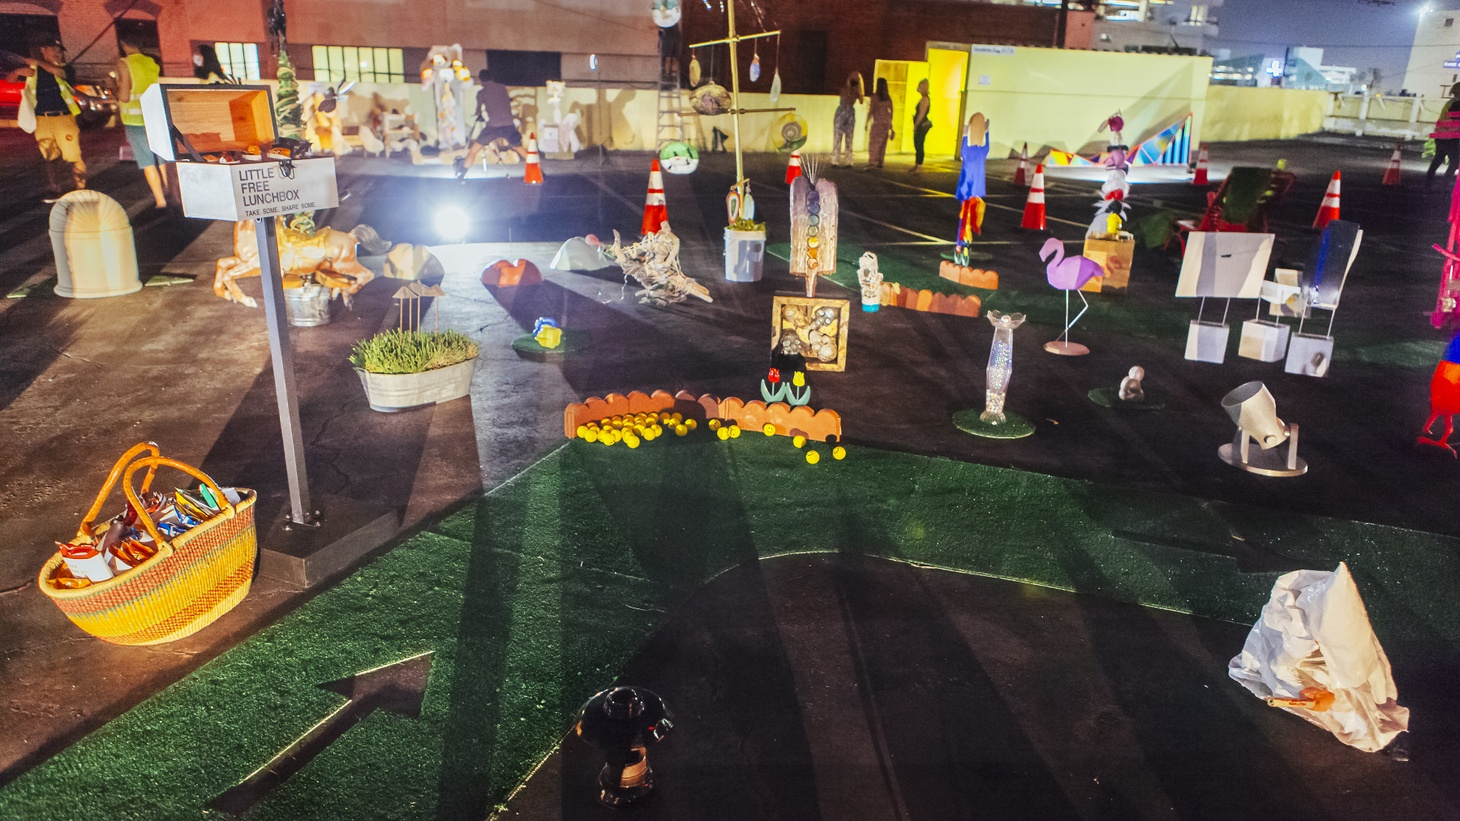 """""""High Beams"""" was a drive-through art show from Saturday night on the rooftop of a parking garage in the Fashion District downtown. It included installations from nine different art spaces and was organized as part of Maiden LA."""